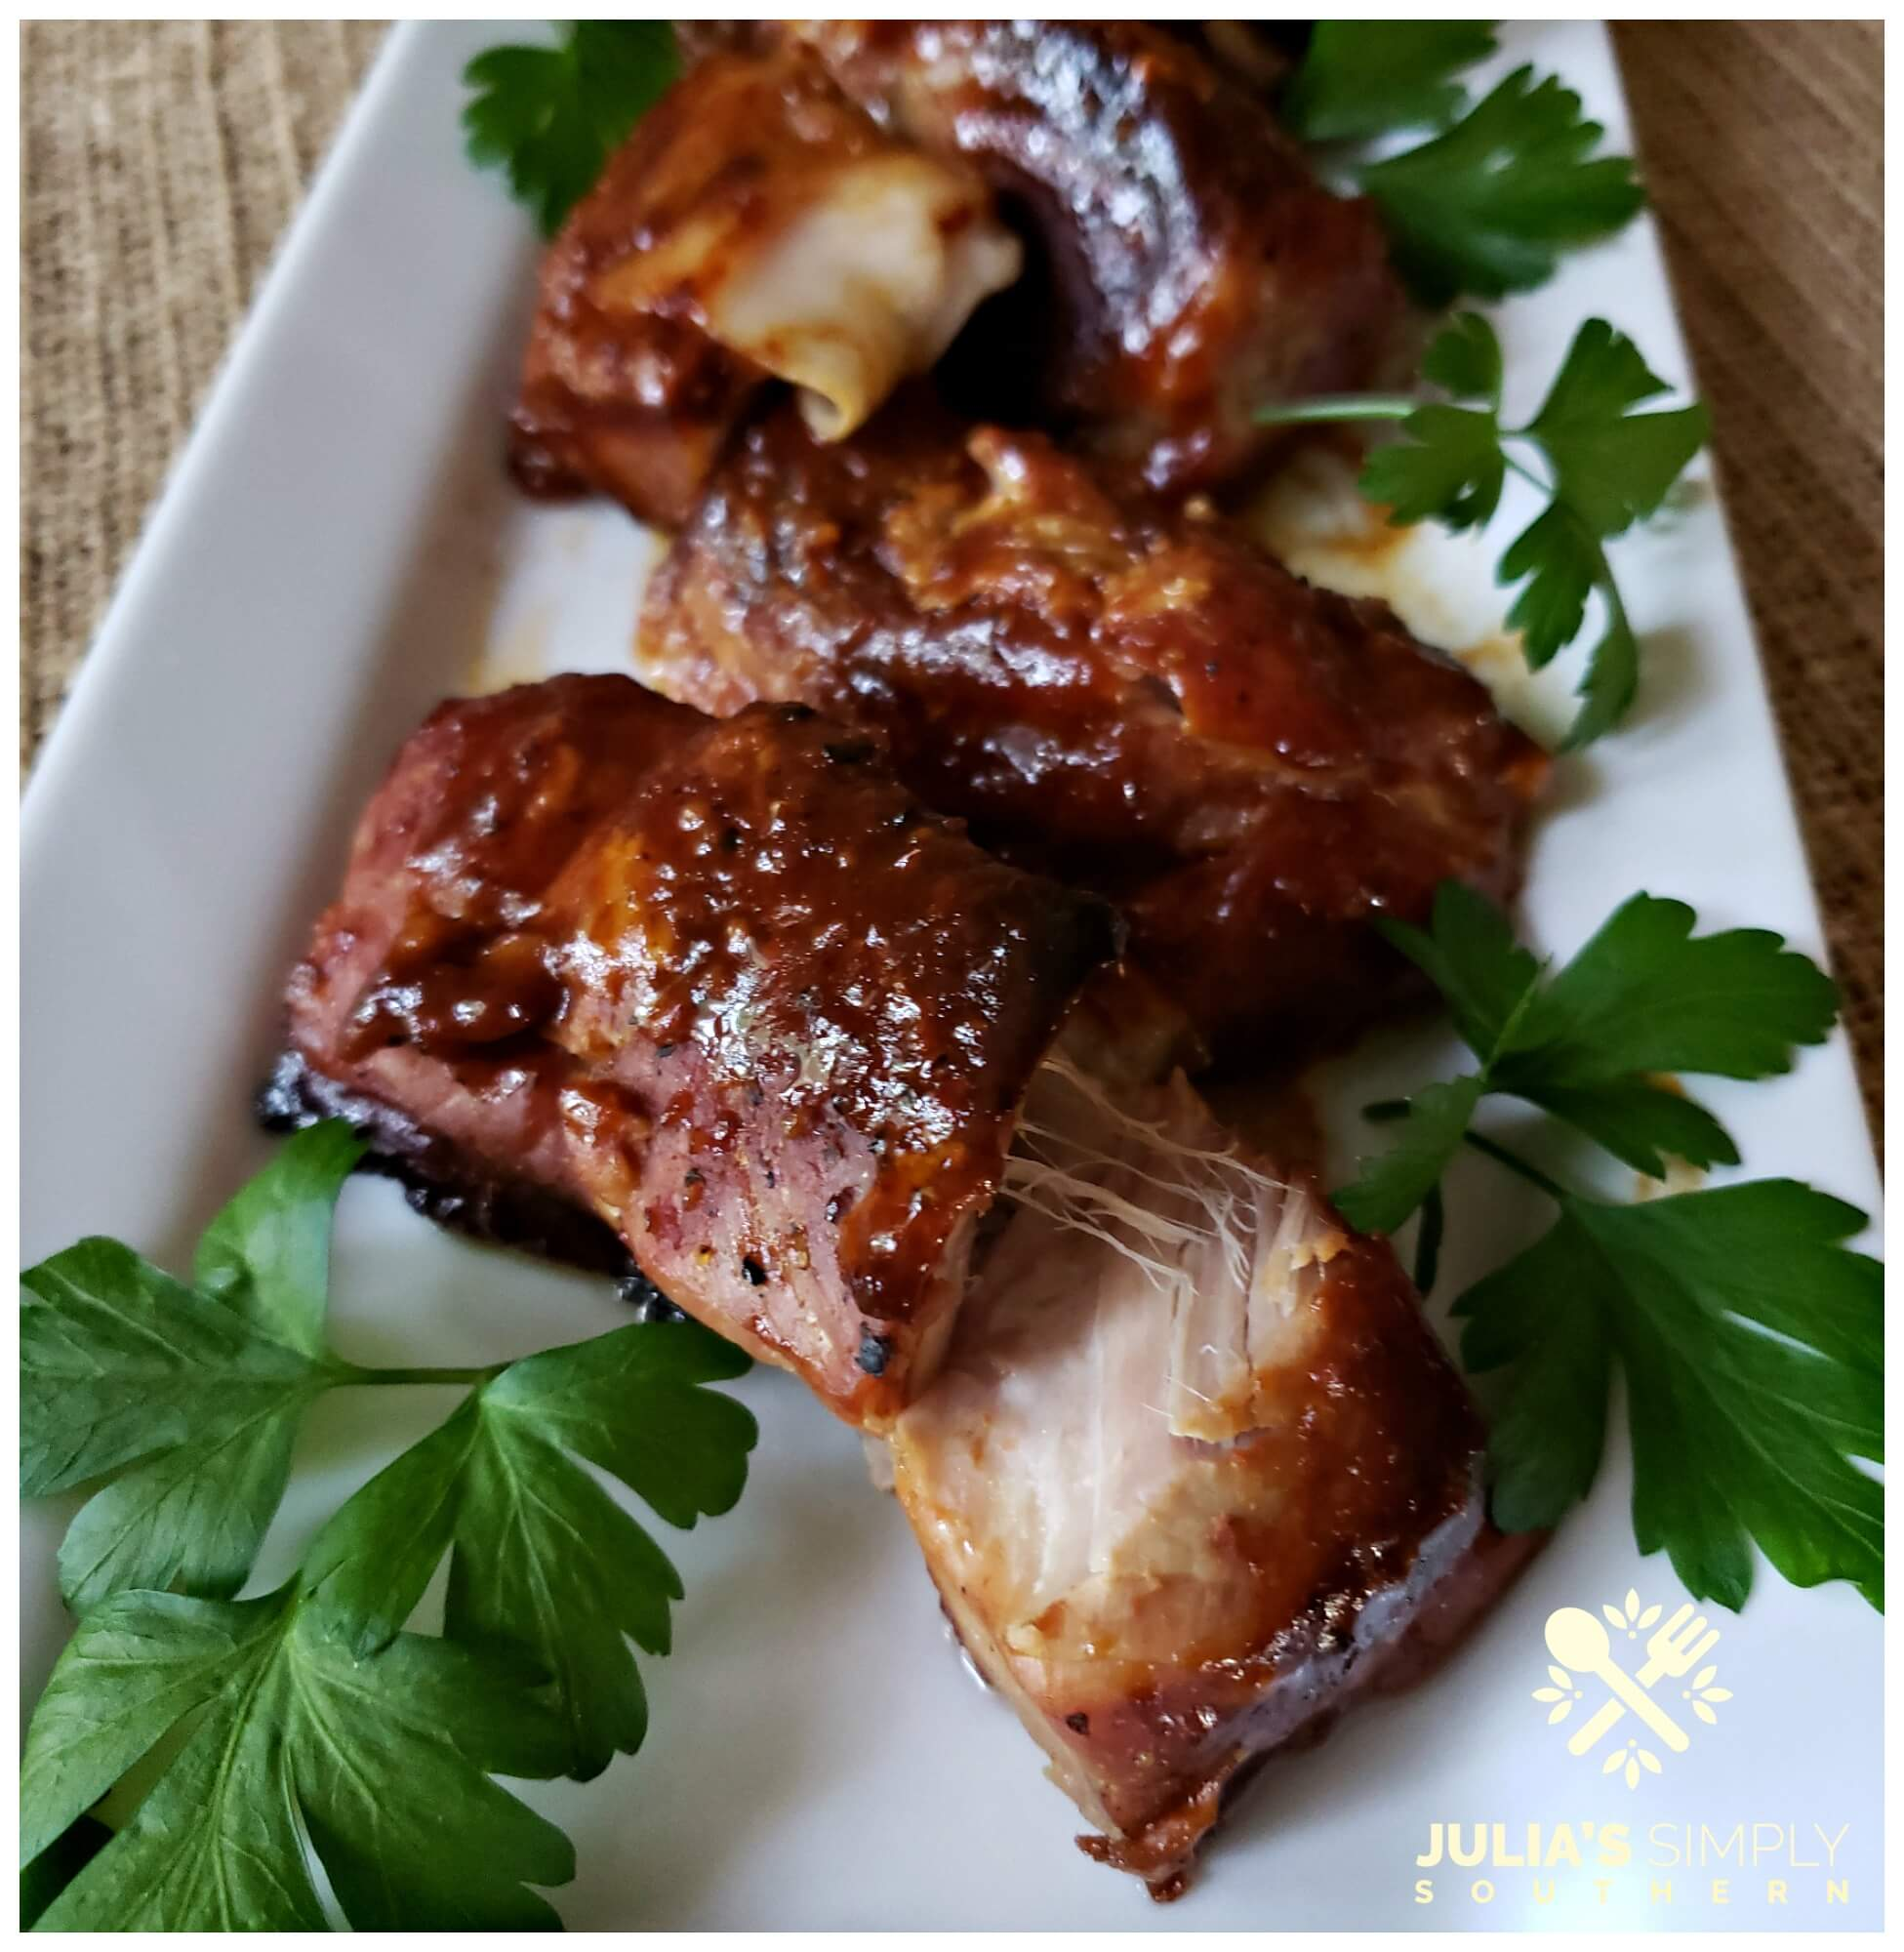 Tender boneless Easy Country-Style Pork Ribs Recipe with BBQ cooked slow in the oven until they are tender and fall apart delicious. Served on a white platter garnished with parsley.